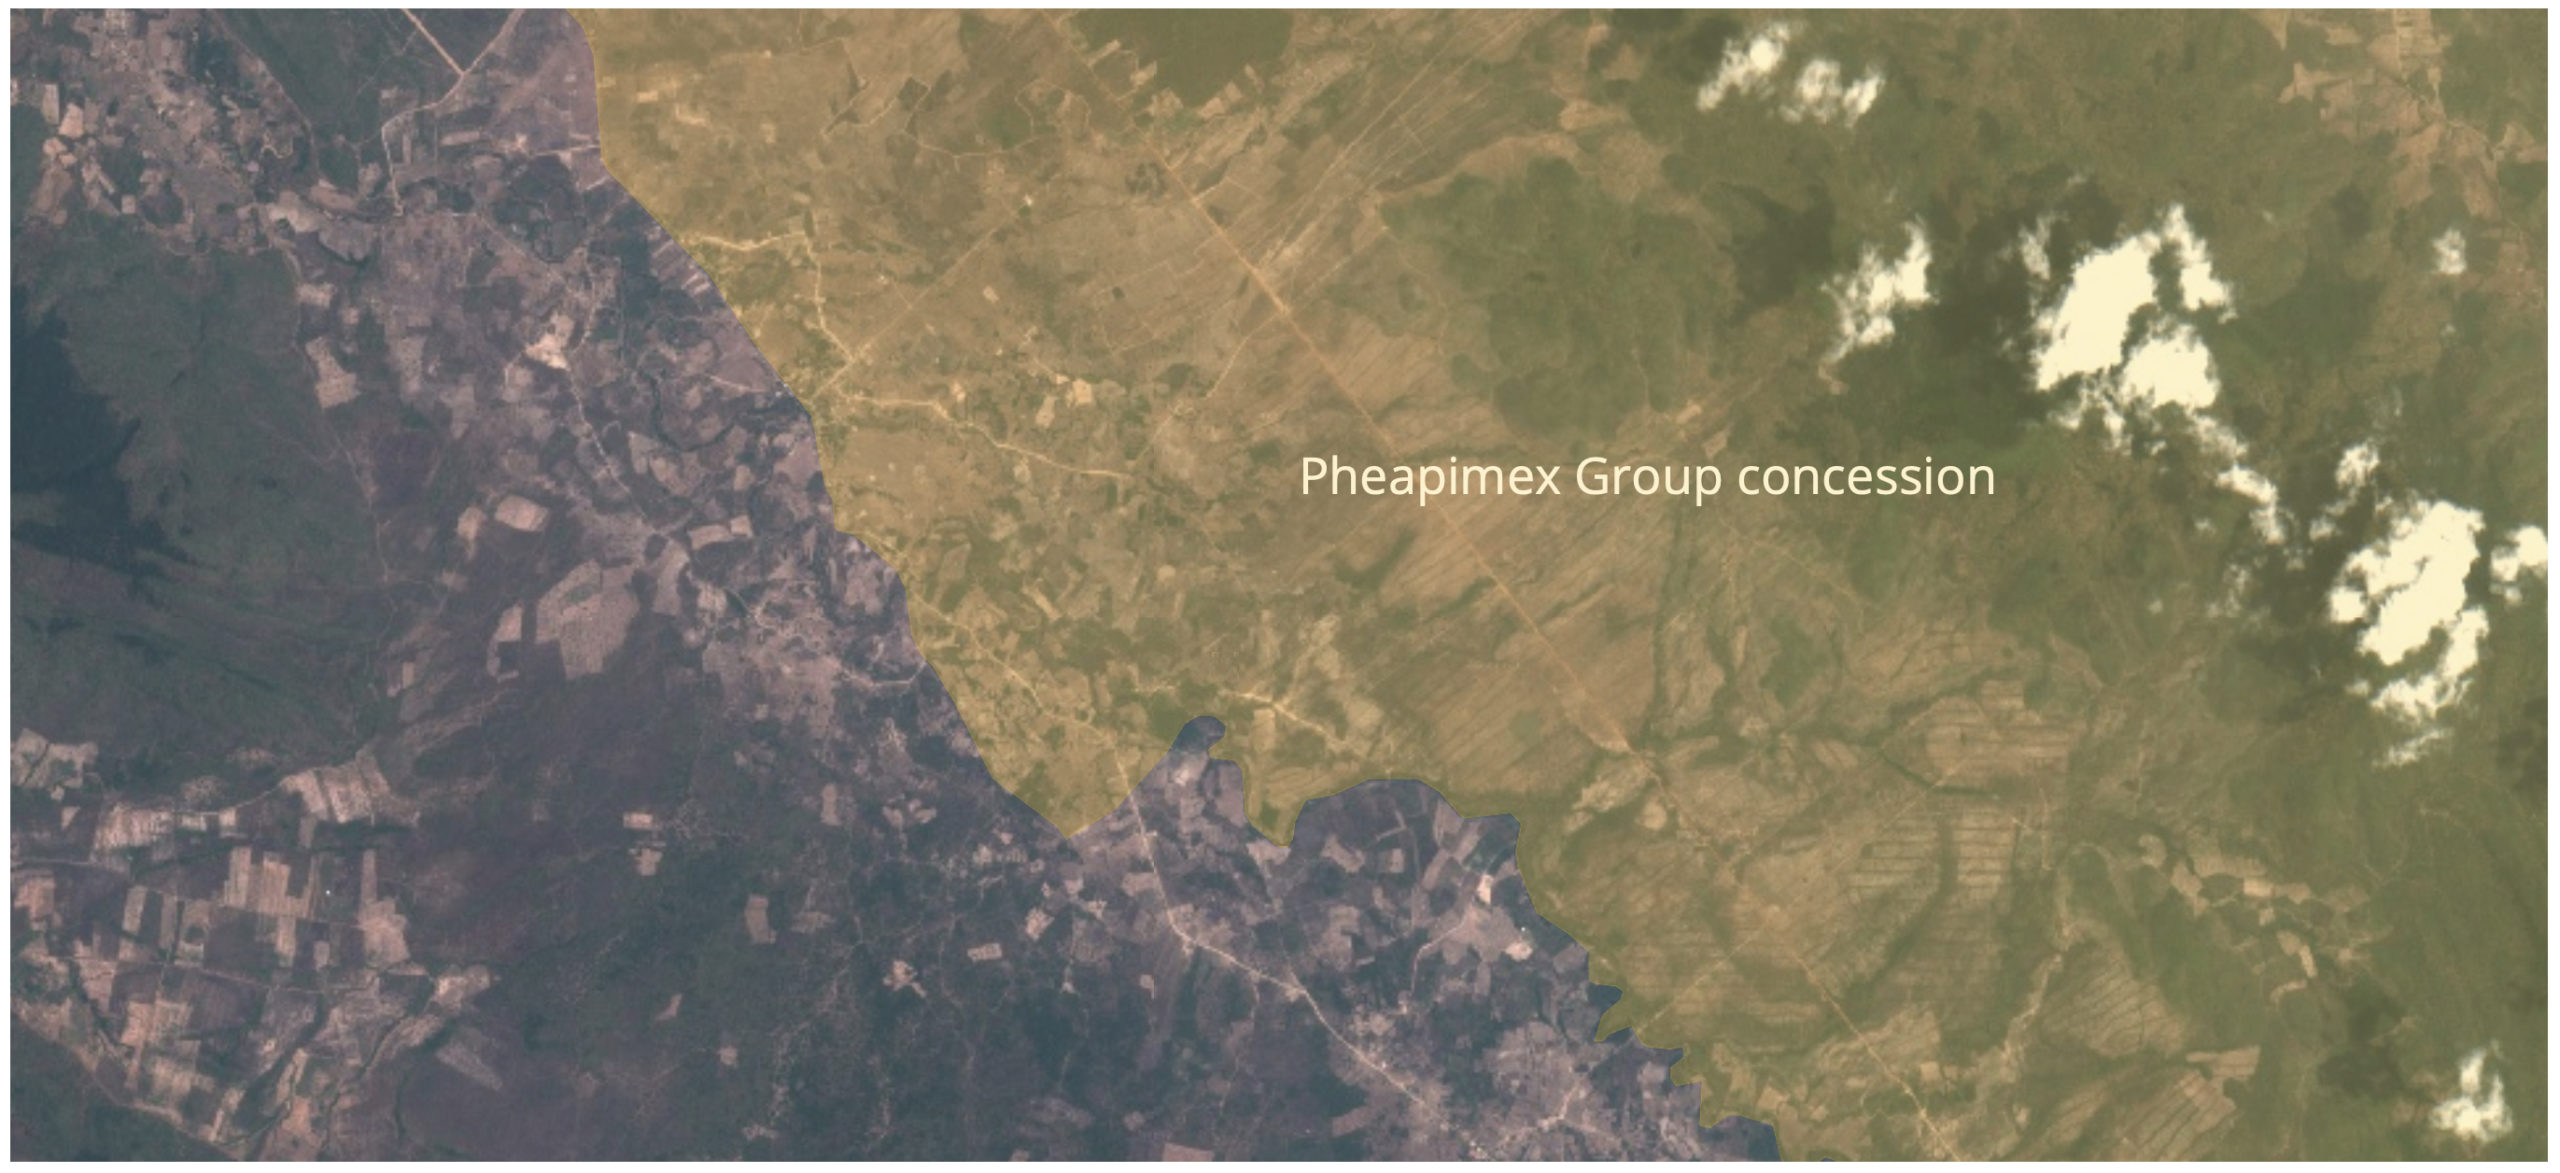 Deforestation appears to spill out of the Pheapimex Group concession near Phnom Samkos Wildlife Sanctuary.